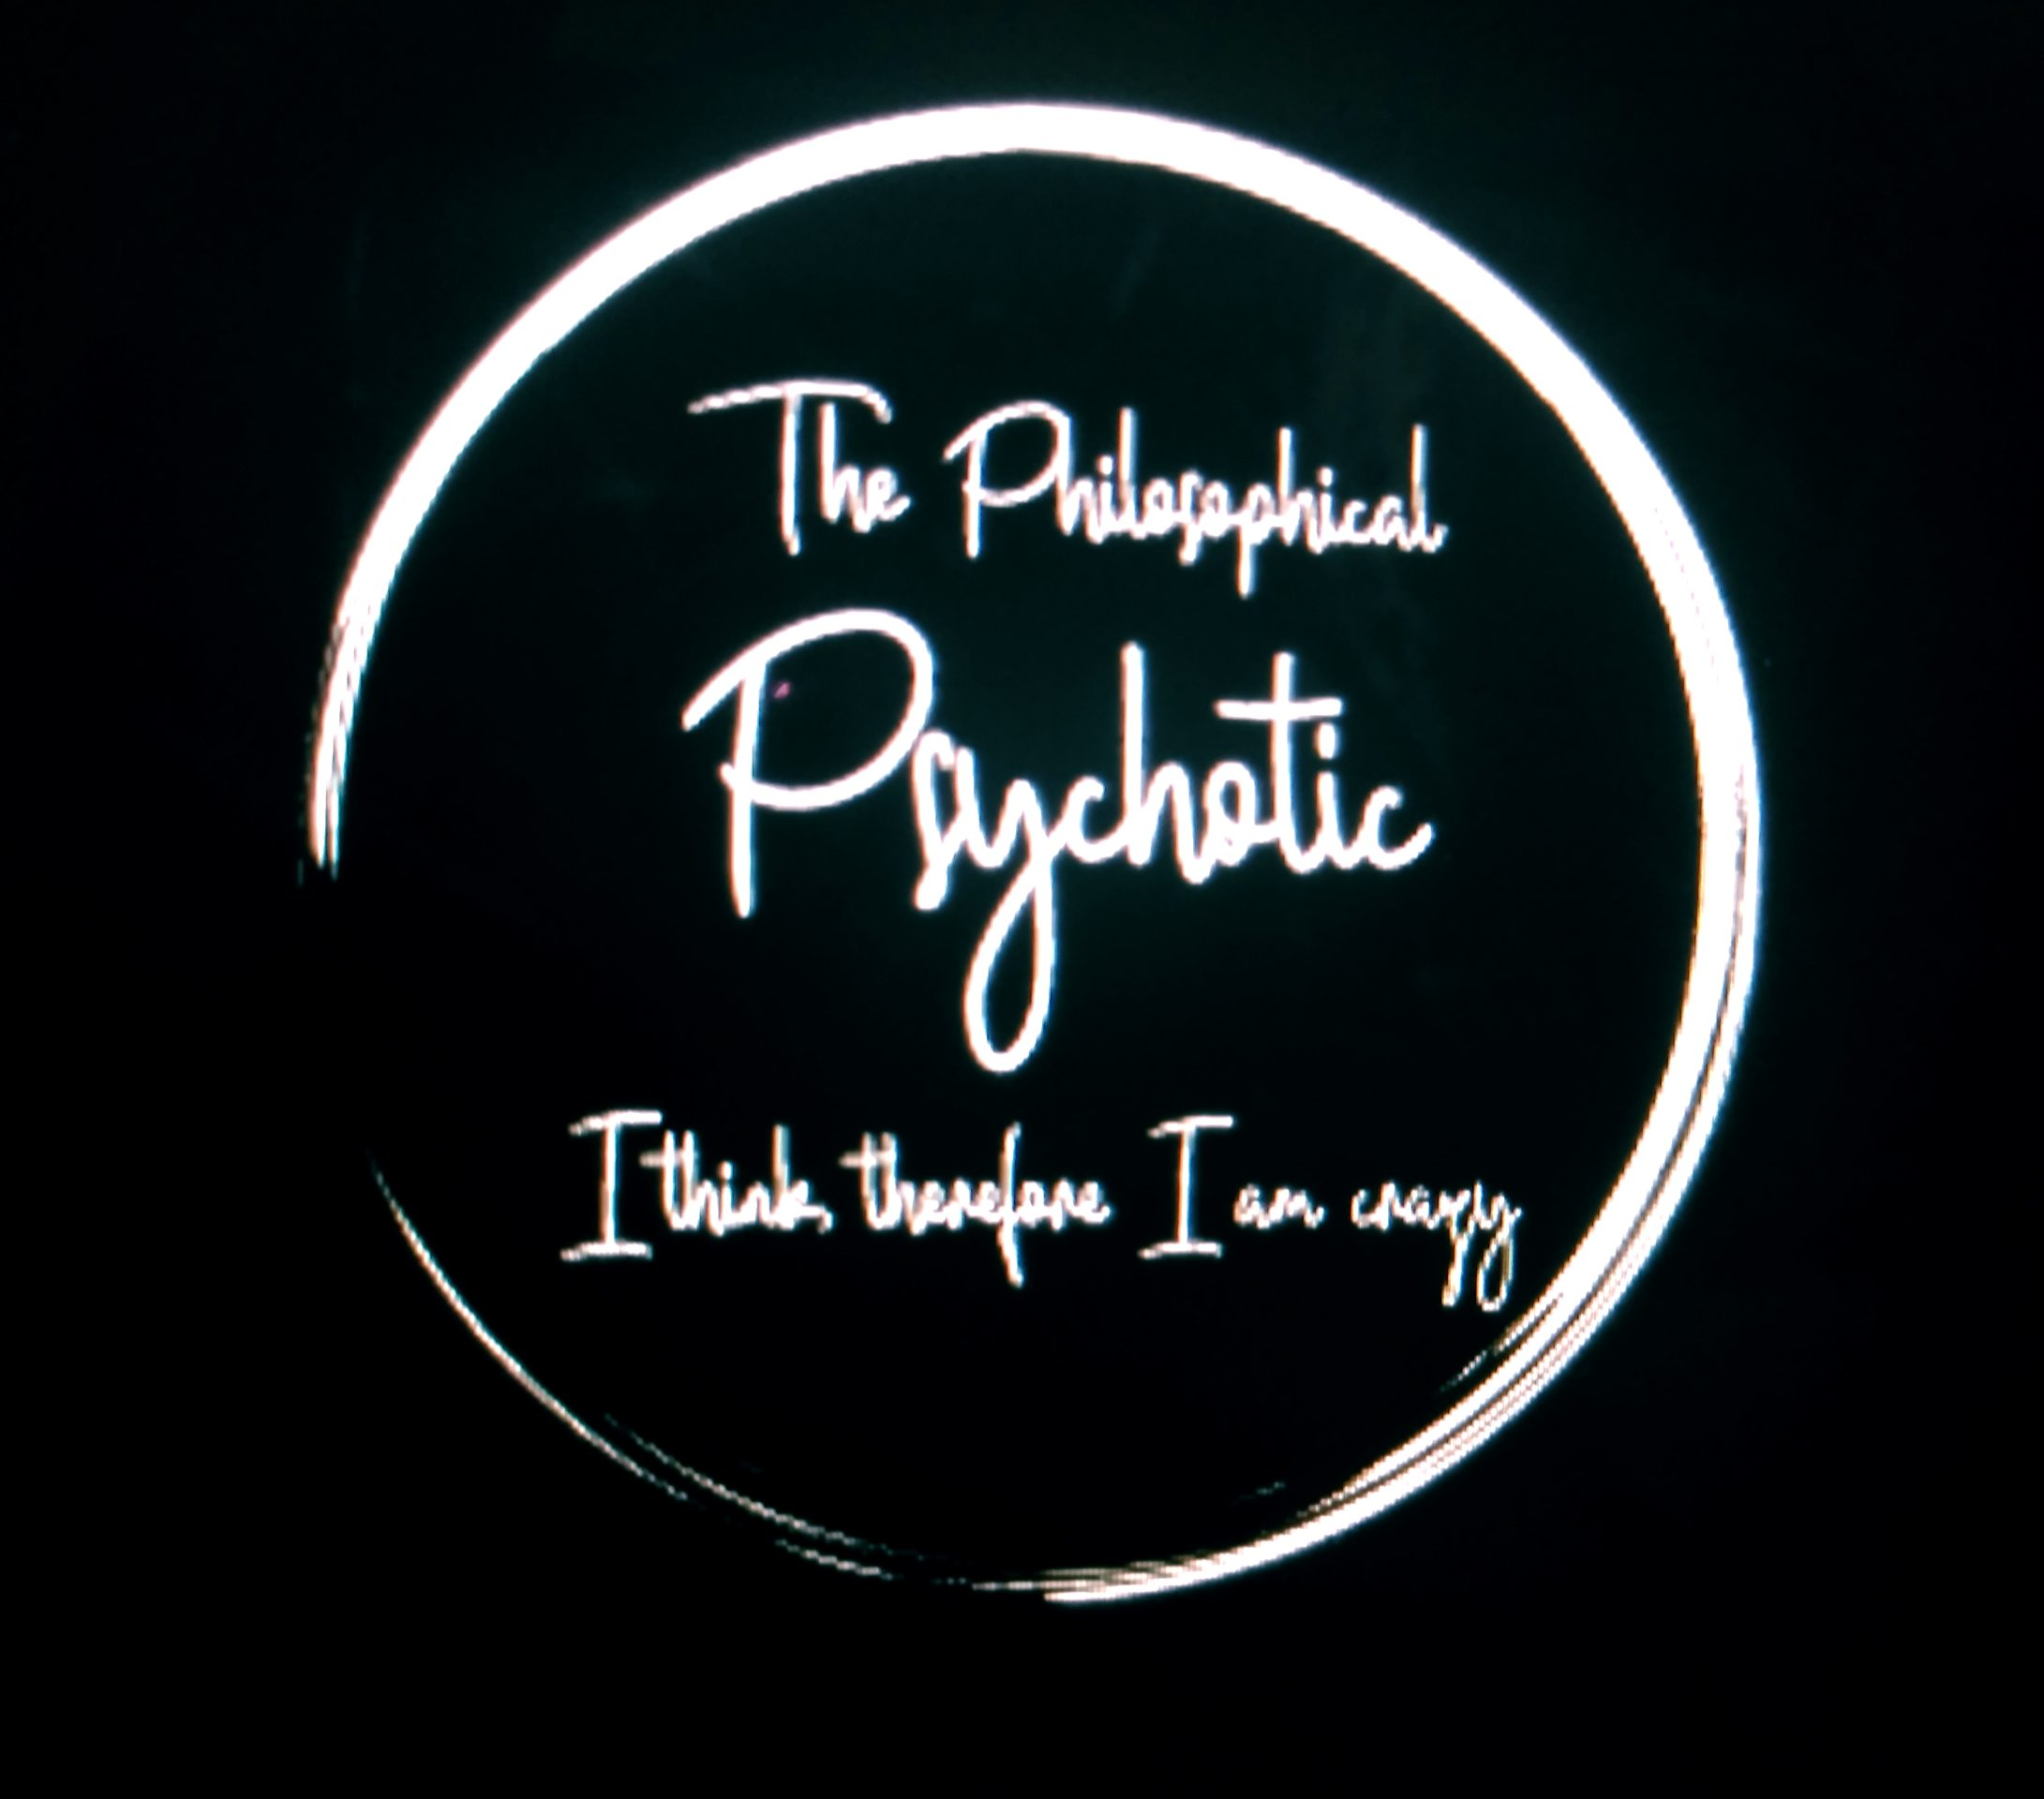 The Philosophical Psychotic